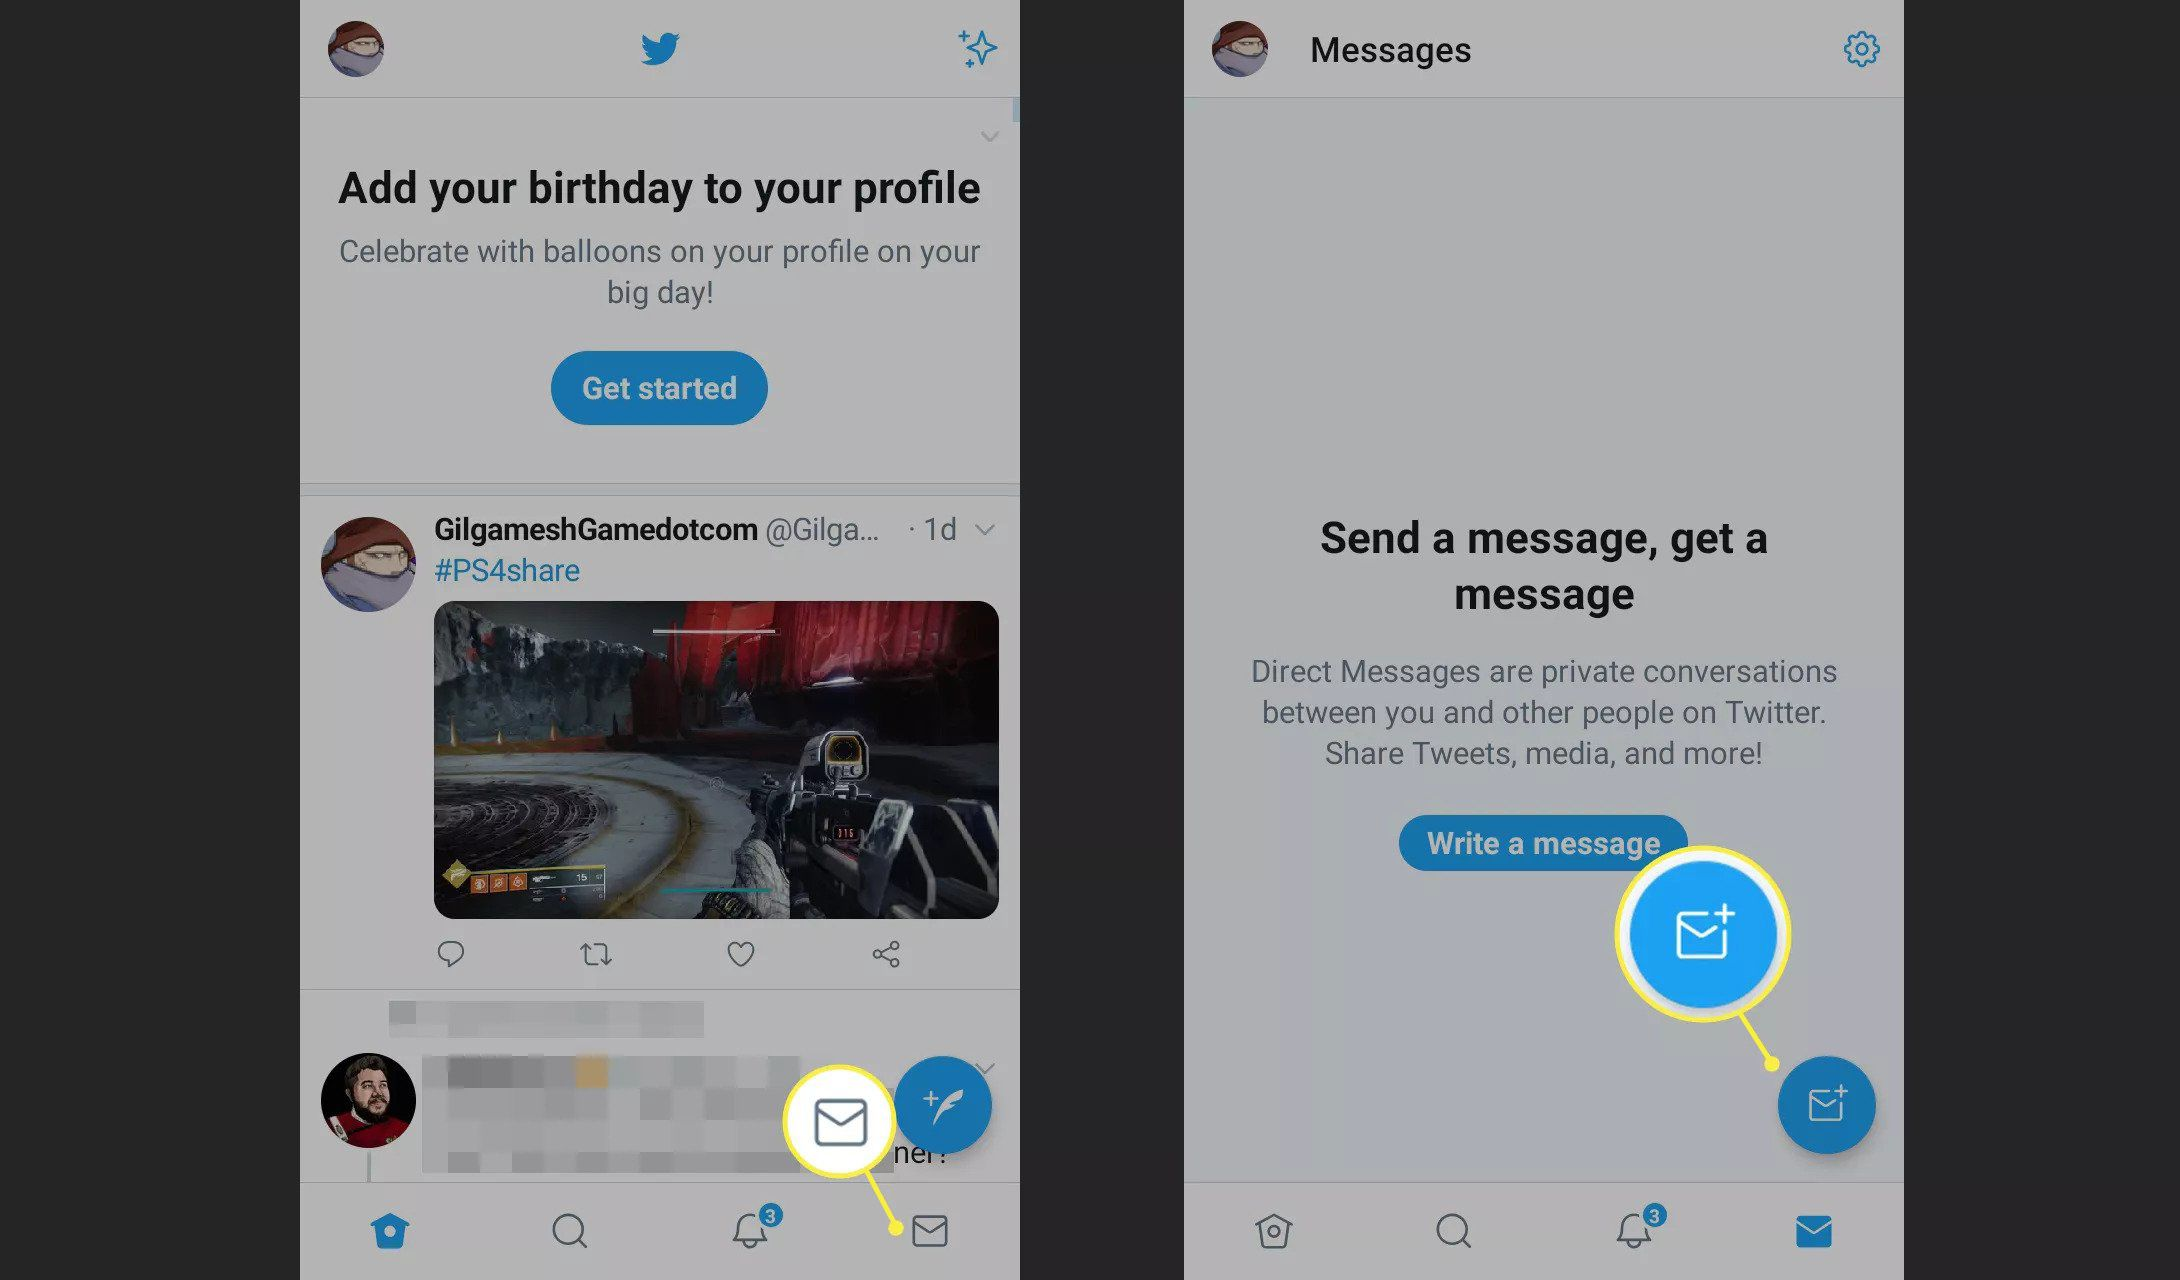 Mail and Send Message icons in the Twitter app